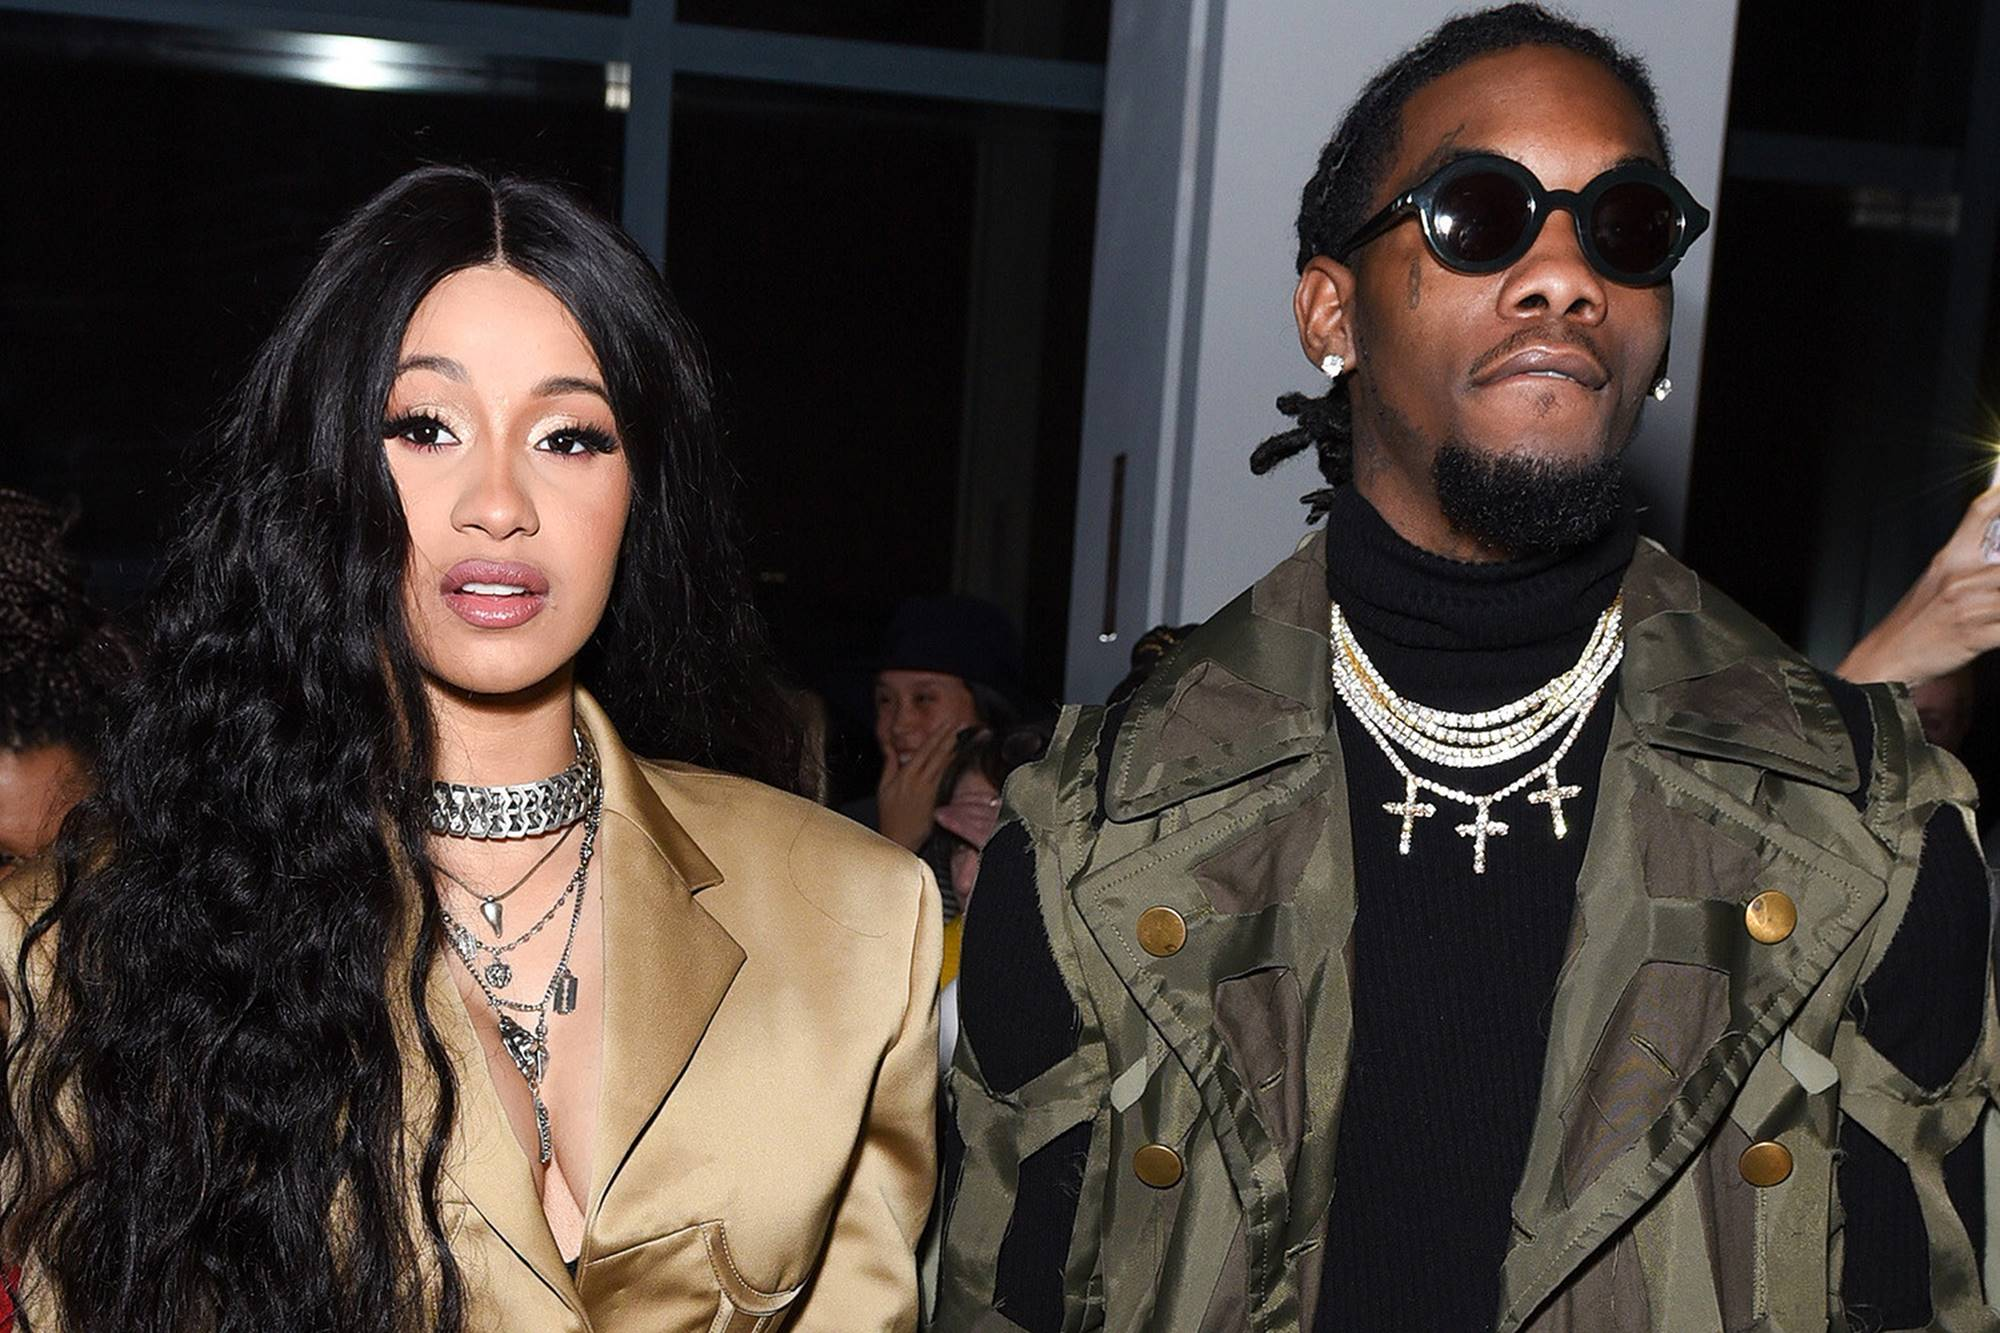 Offset makes public plea to win back wife Cardi B's forgiveness